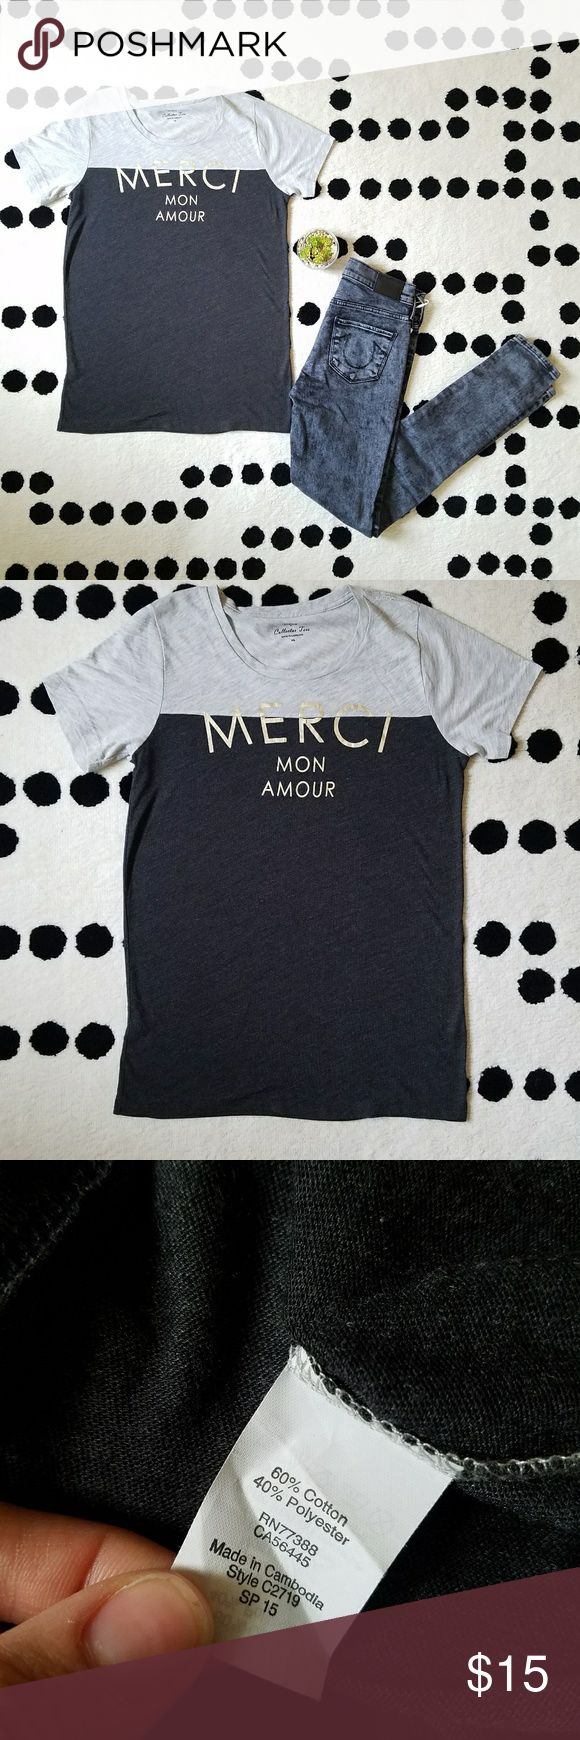 J crew collectors tee shirt top Merci gold gray Super cute and so so soft! New without tags. Gray colorblock with gold Merci Mon Amour print. J. Crew Tops